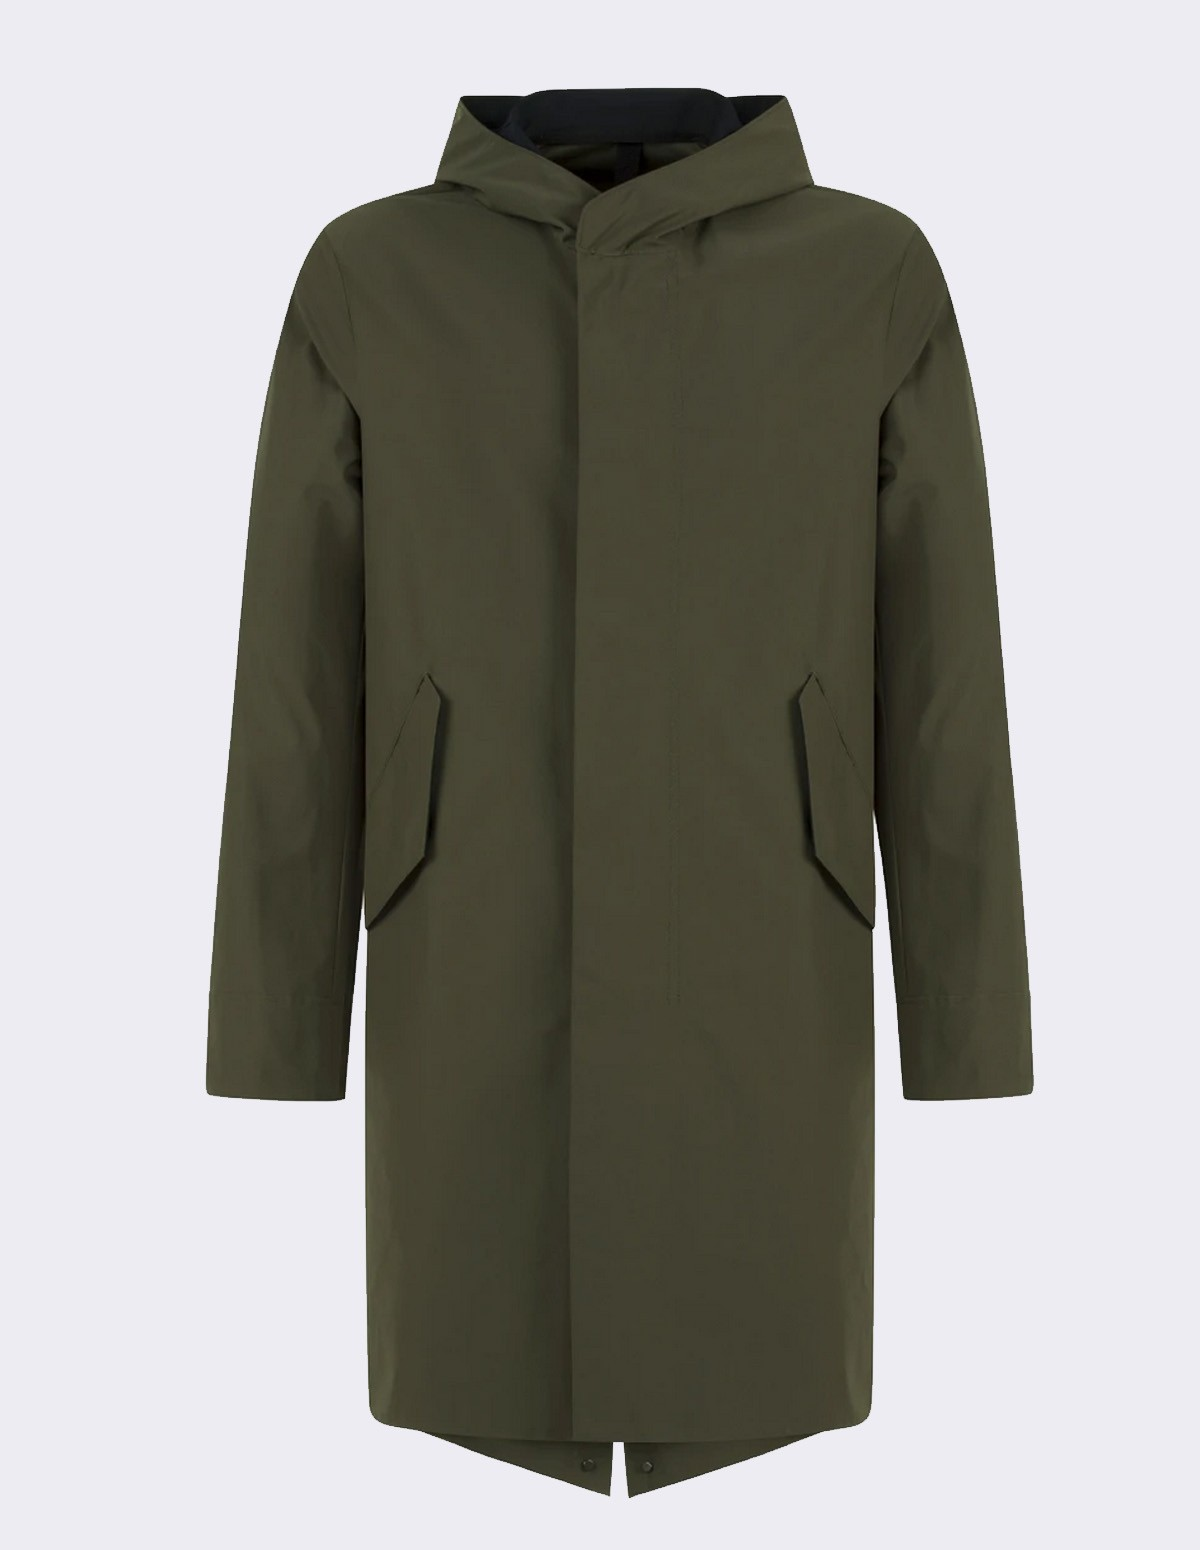 Hwl Men Bicolo Fishtale Parka - MILITARY G